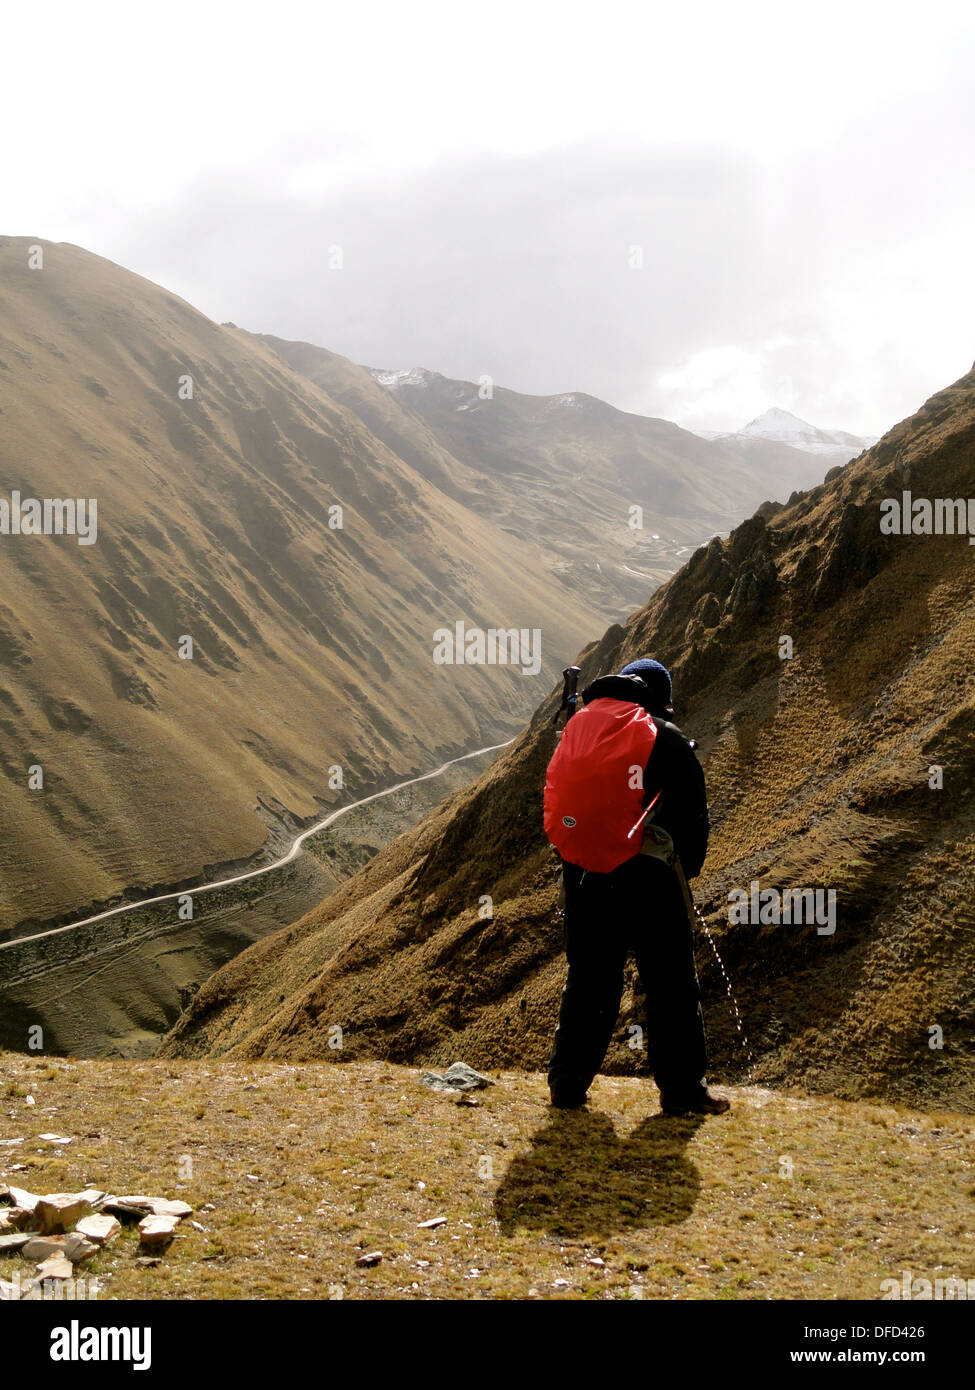 Mountain living near cusco peru royalty free stock photo - A Man Peeing While Out Walking In The Andes Mountains During A Trek In The Lares Valley Near Cusco Peru